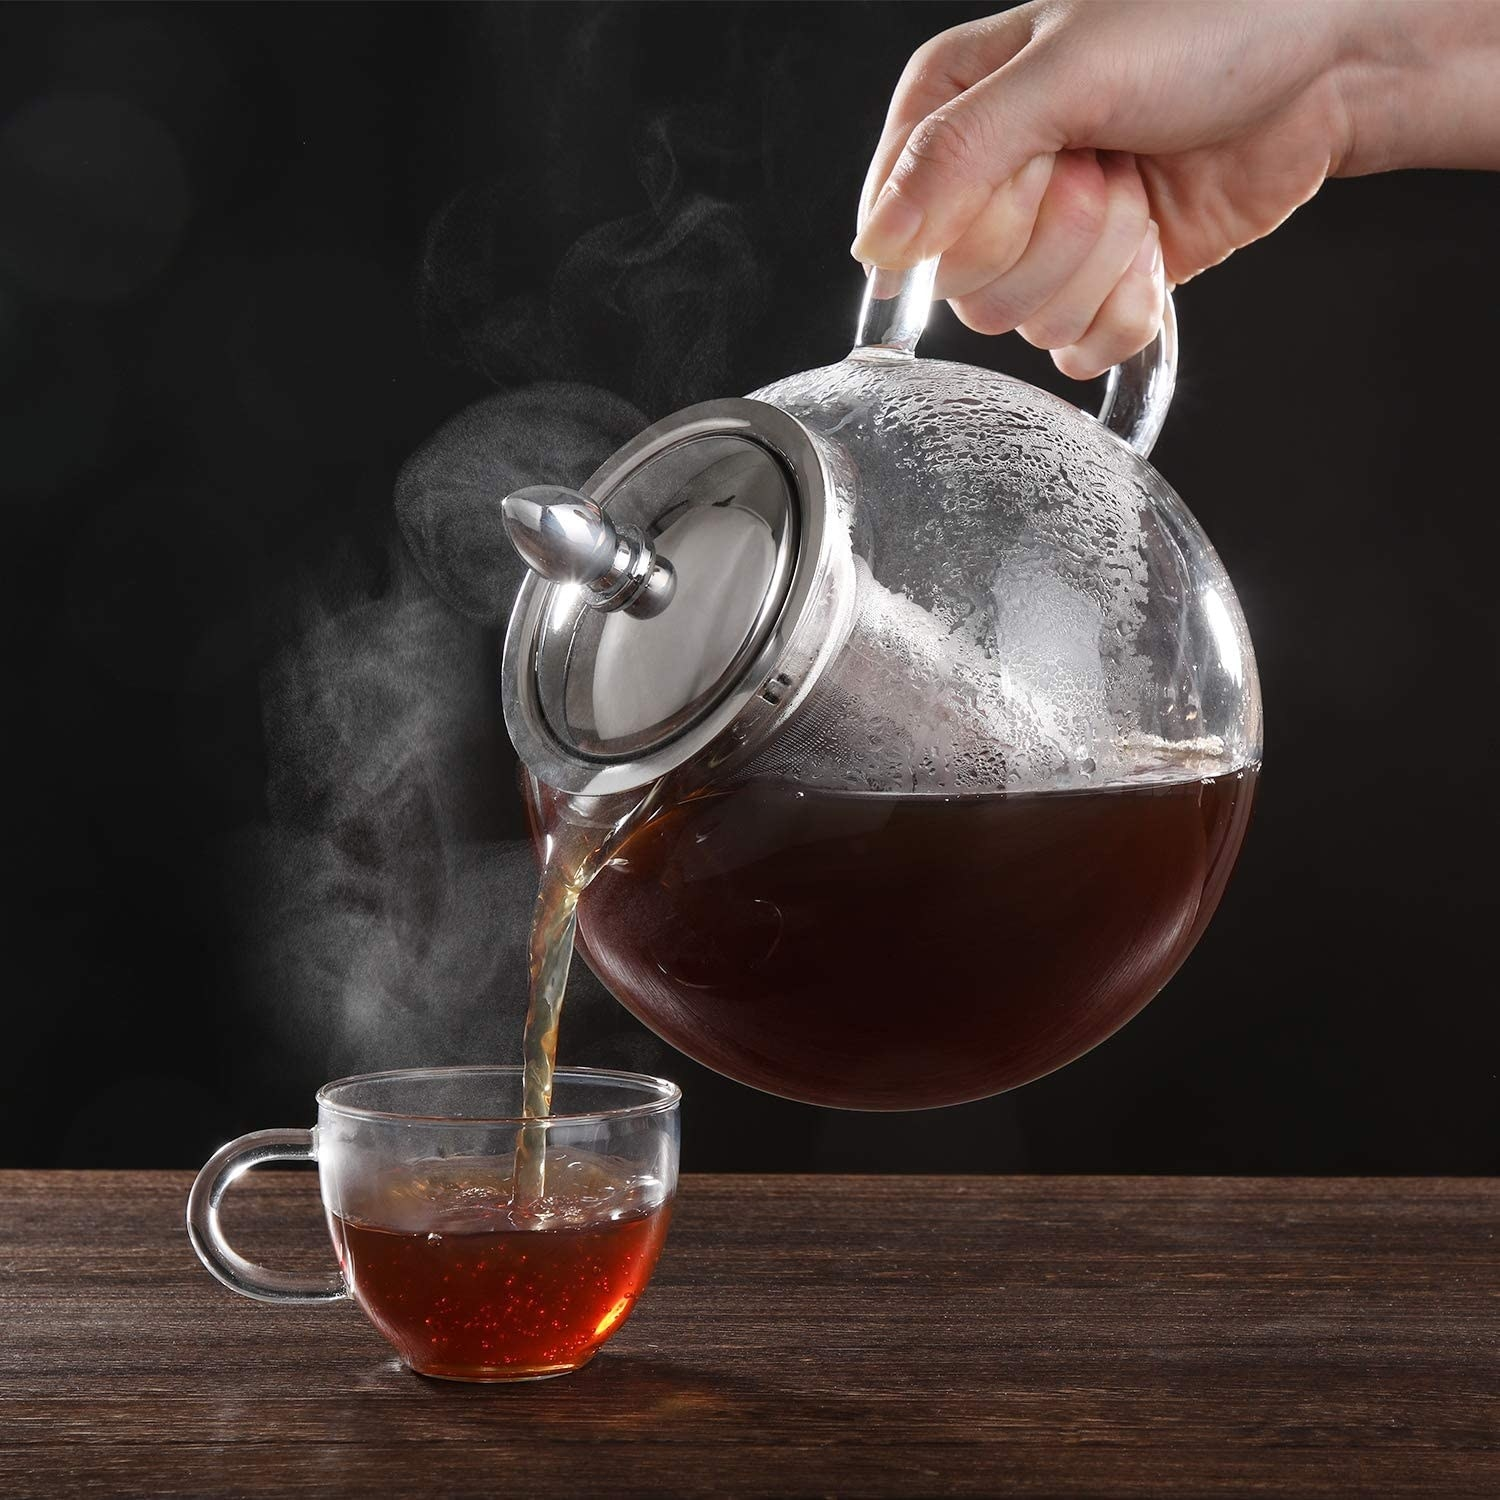 A person pouring tea from the pot into a glass teacup